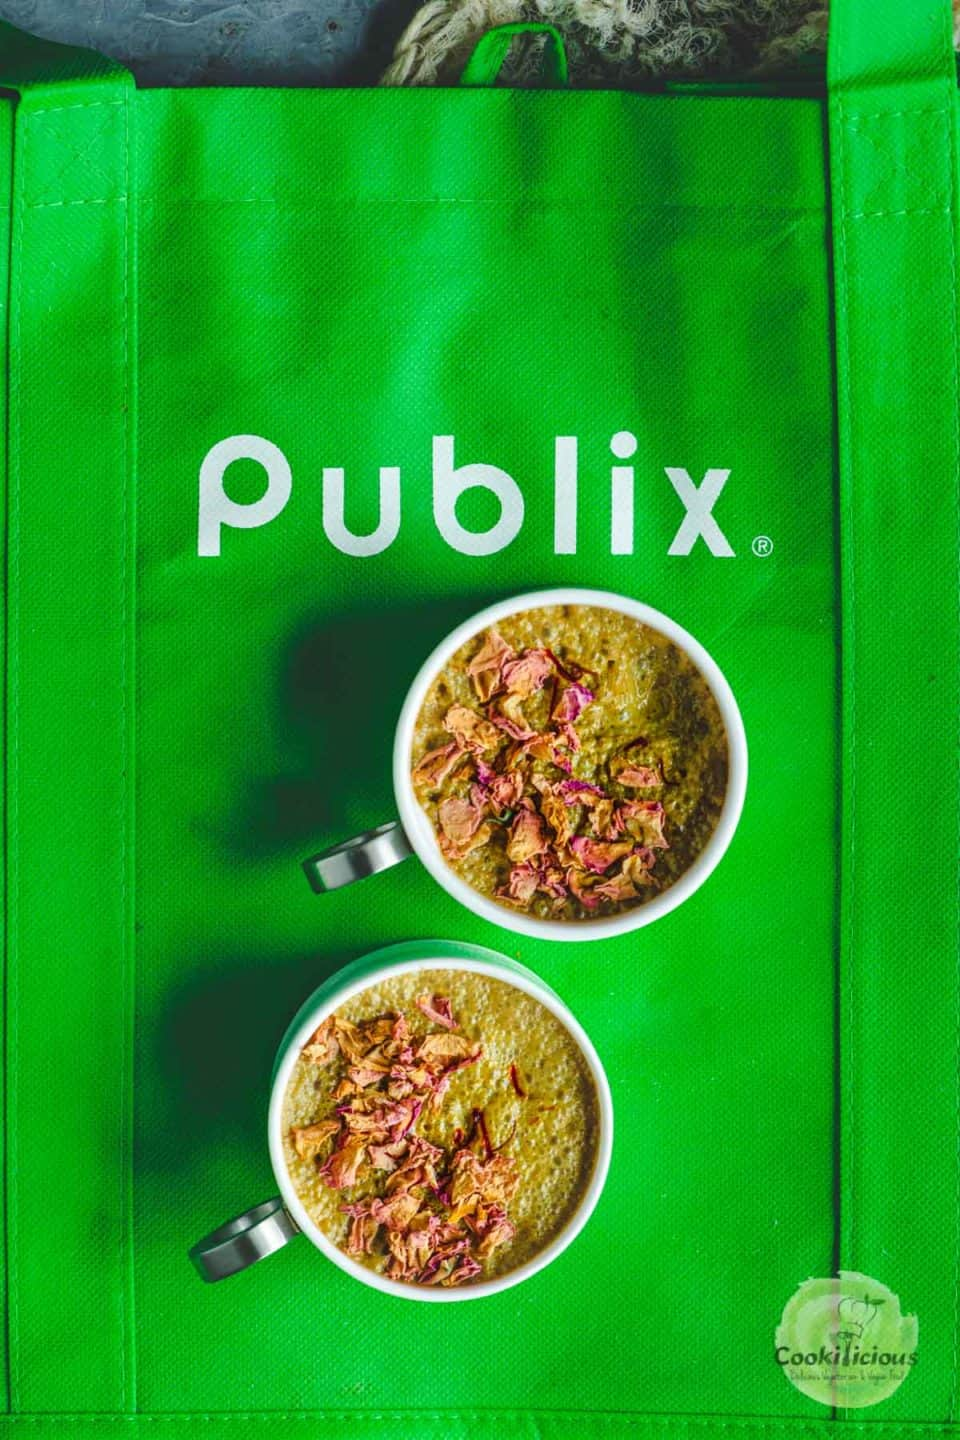 2 cups of Vegan Lavender Moon Milk placed over a Publix shopping bag